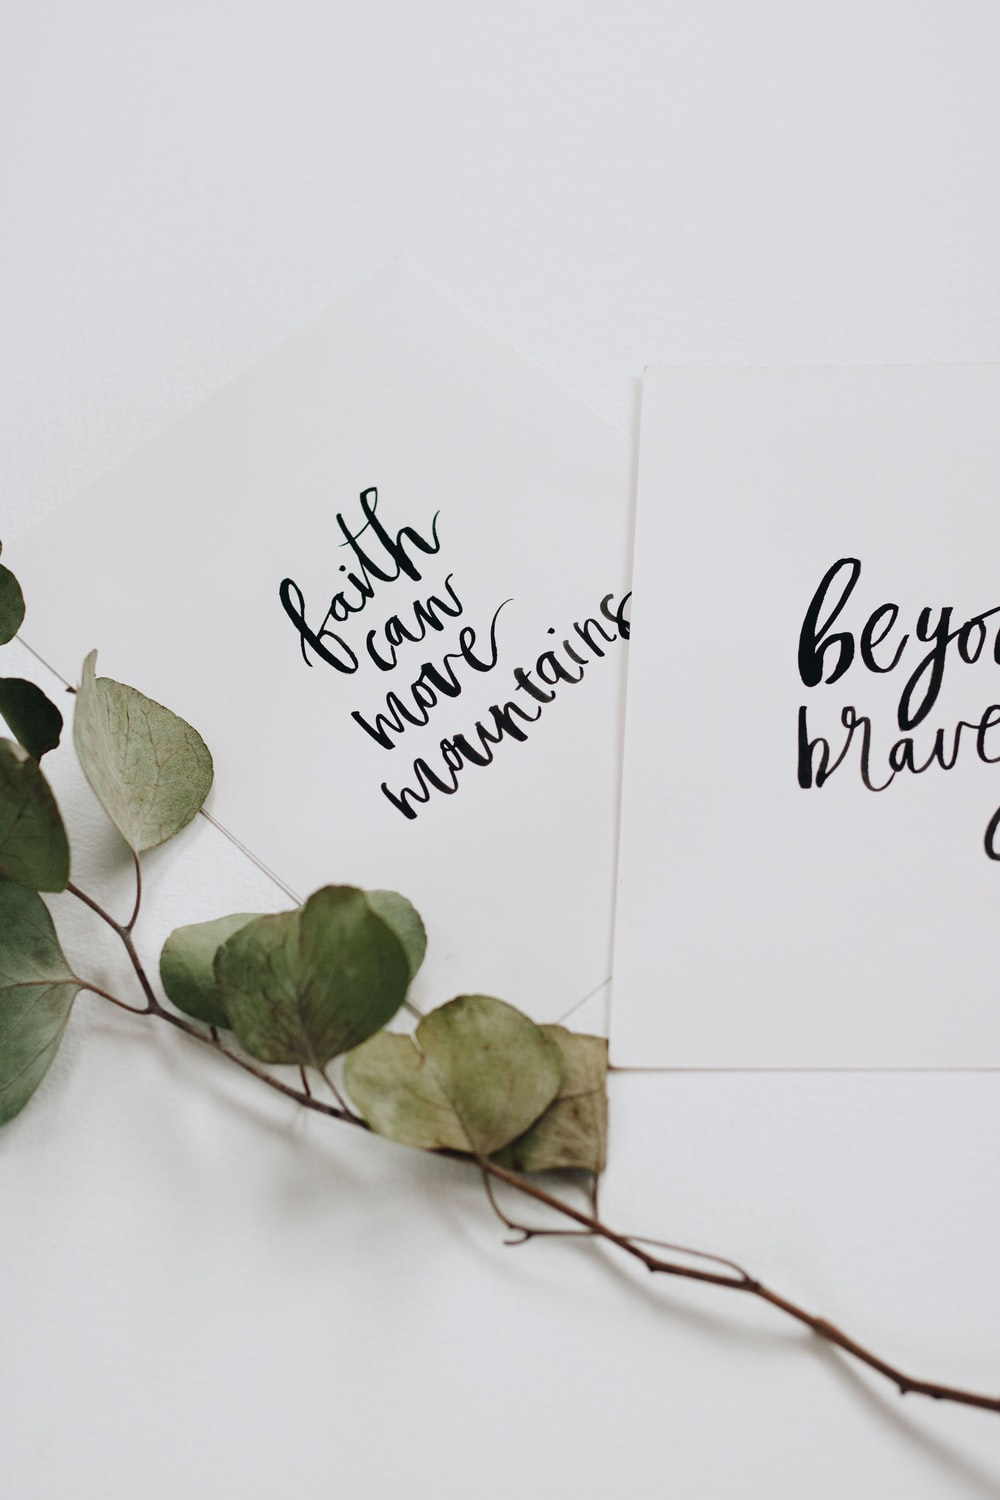 green rose leaves and two cards flat lay photography